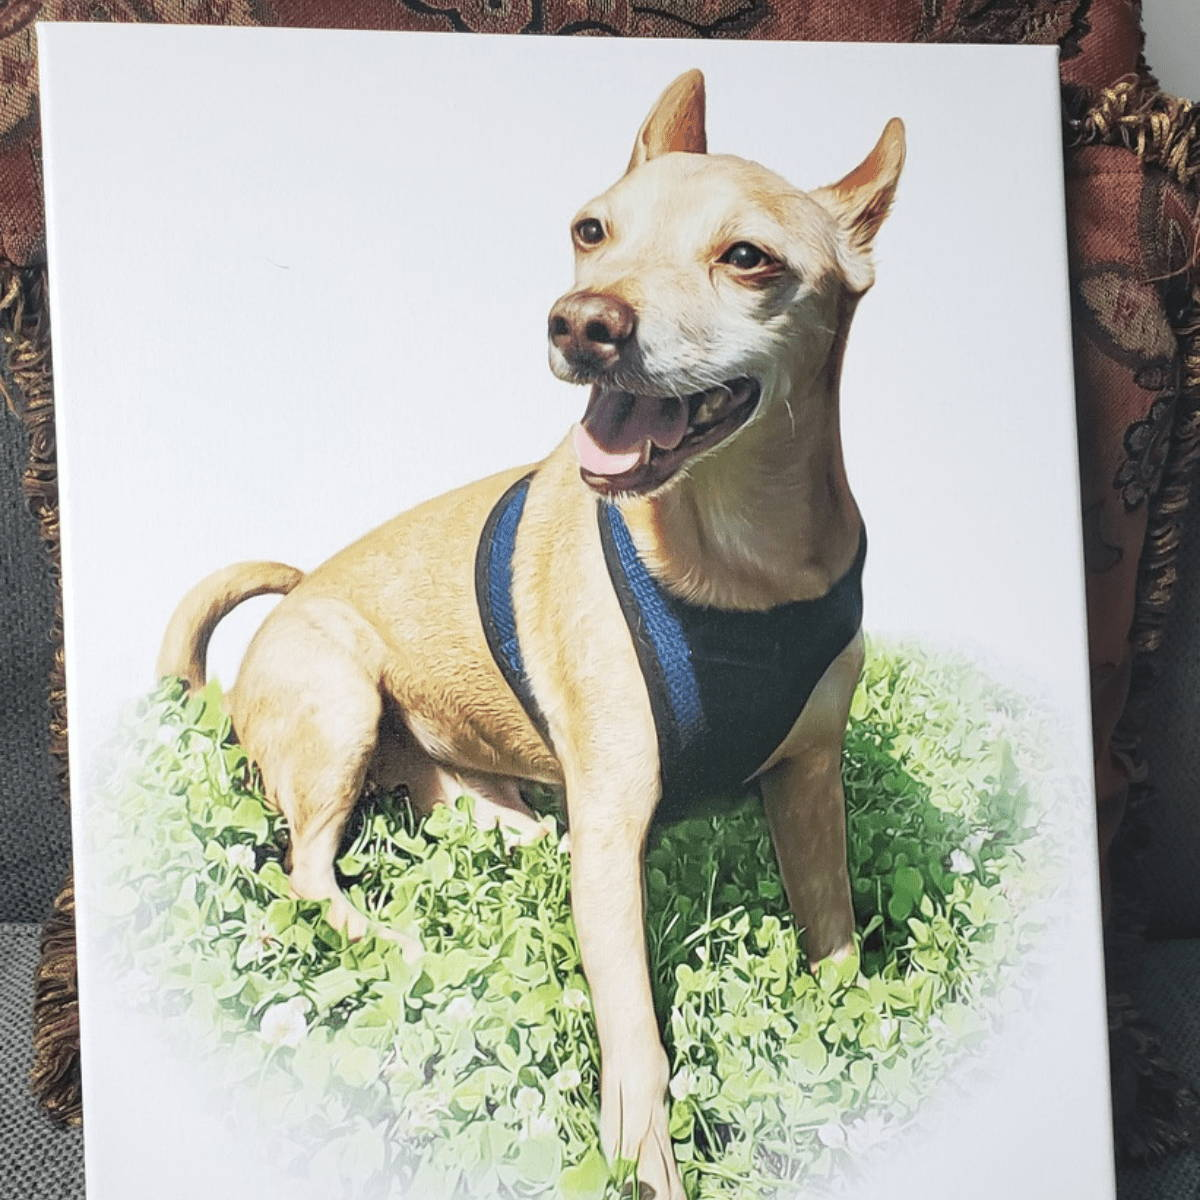 My pooch face dog painting on white background